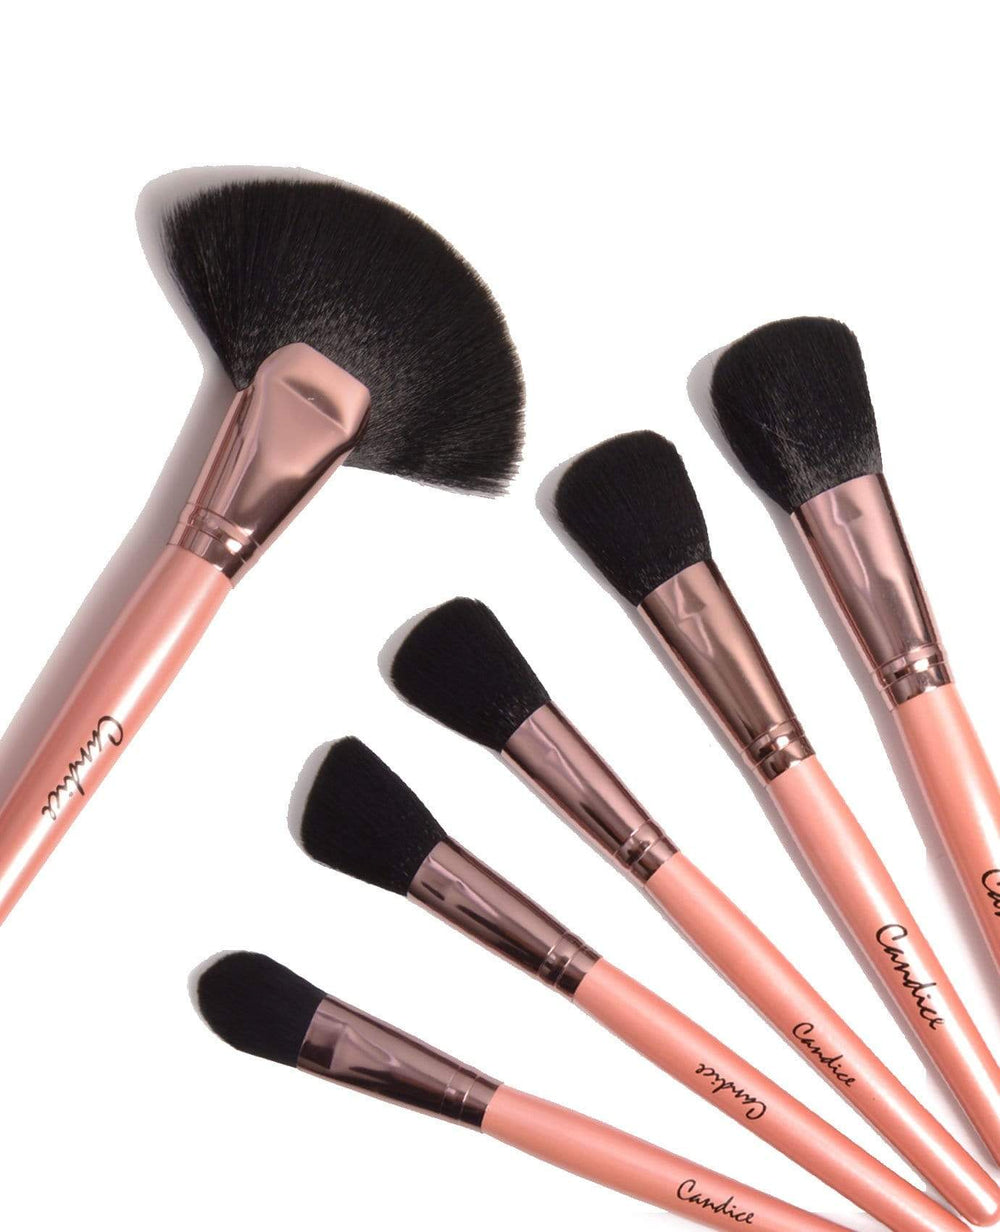 Candice Rose Gold - 24 Pc Brush Set